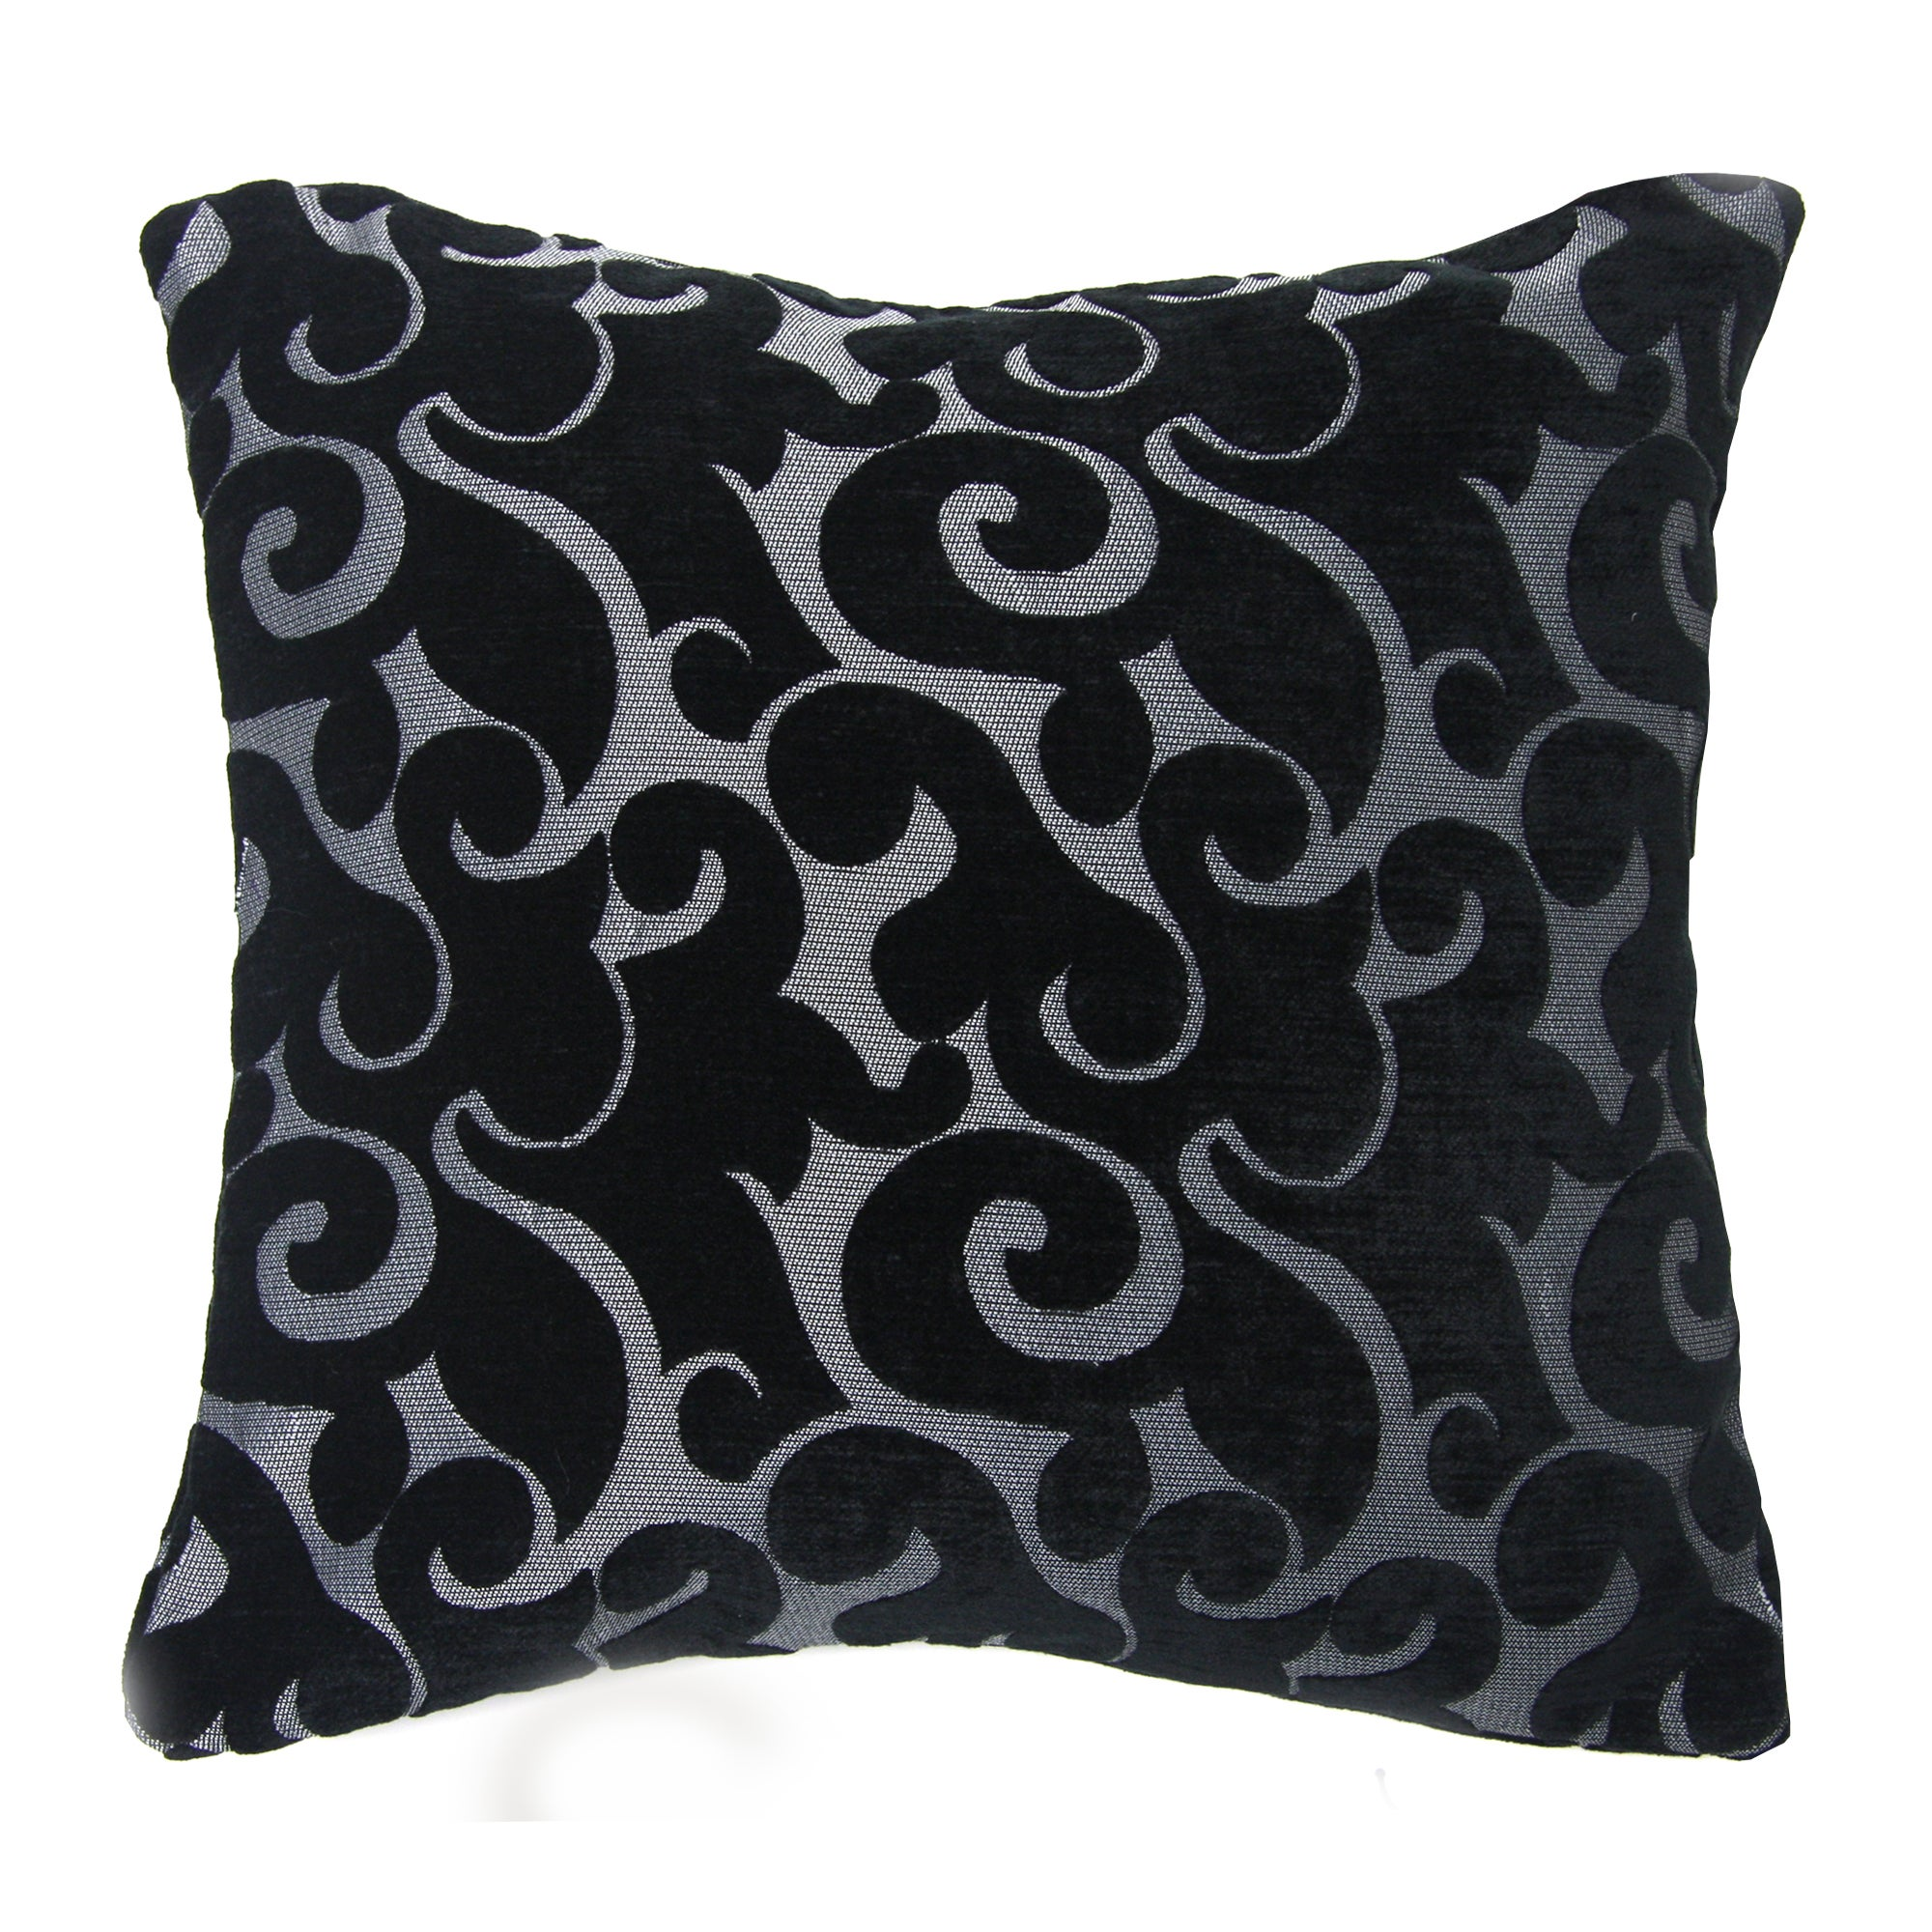 Ates Cushion Cover